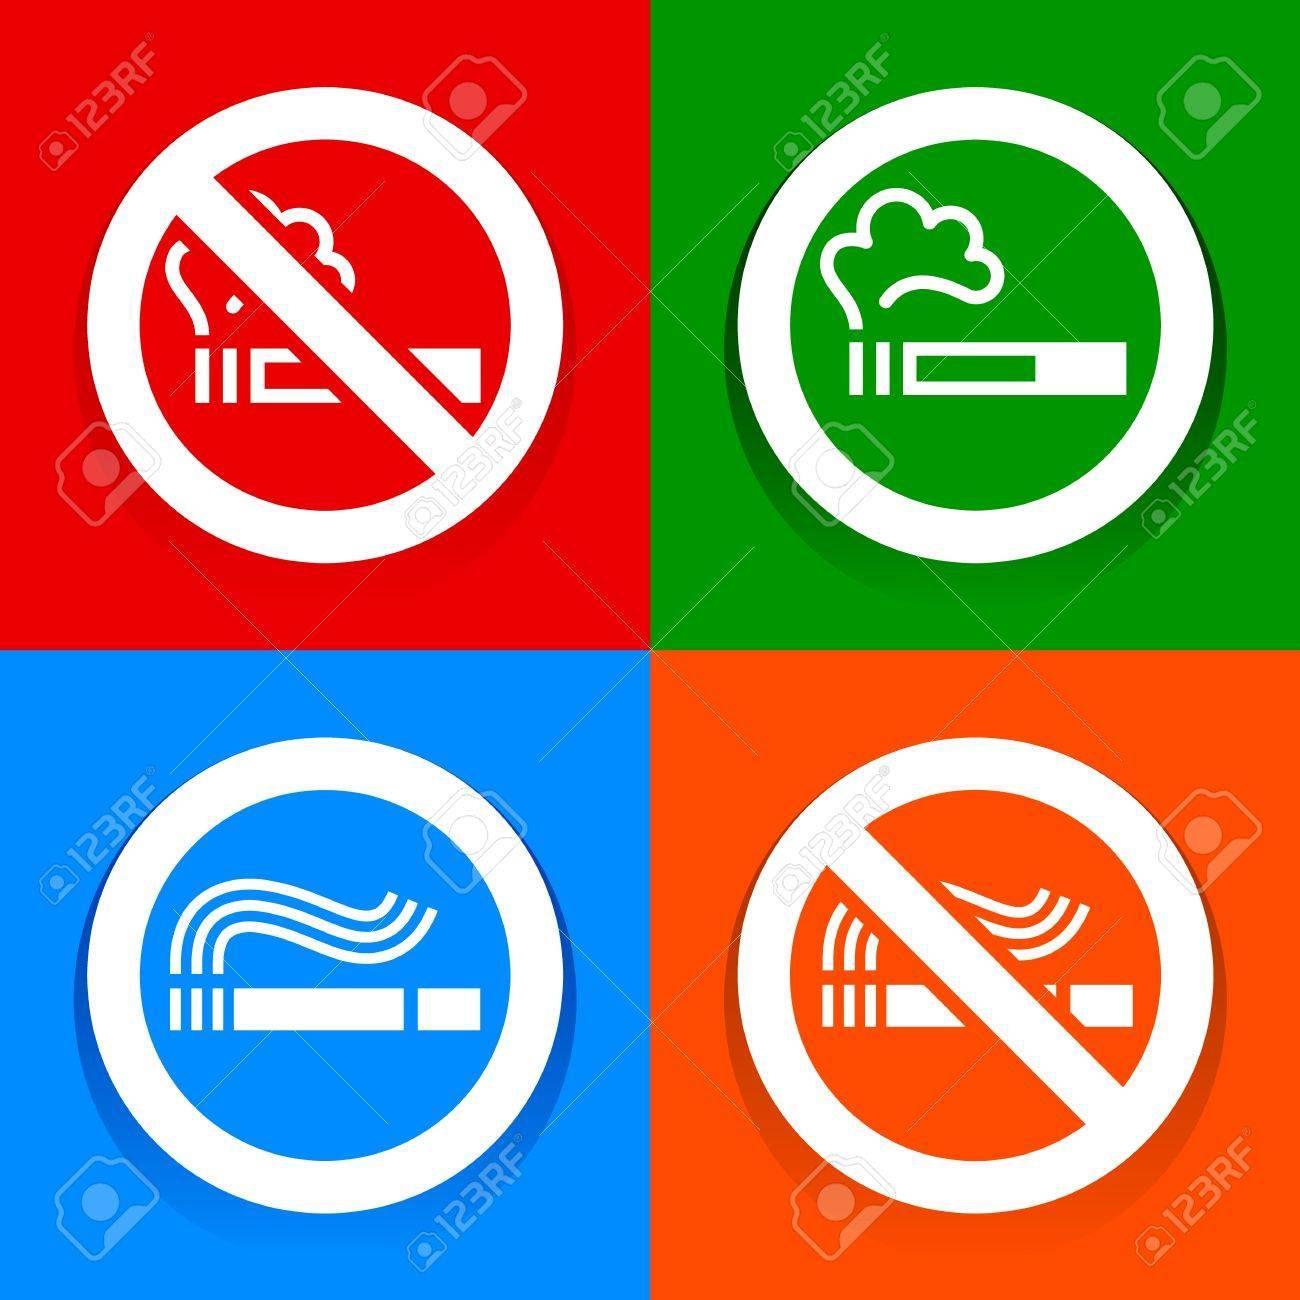 Stickers multicolored no smoking symbol royalty free cliparts stickers multicolored no smoking symbol stock vector 18238277 buycottarizona Images